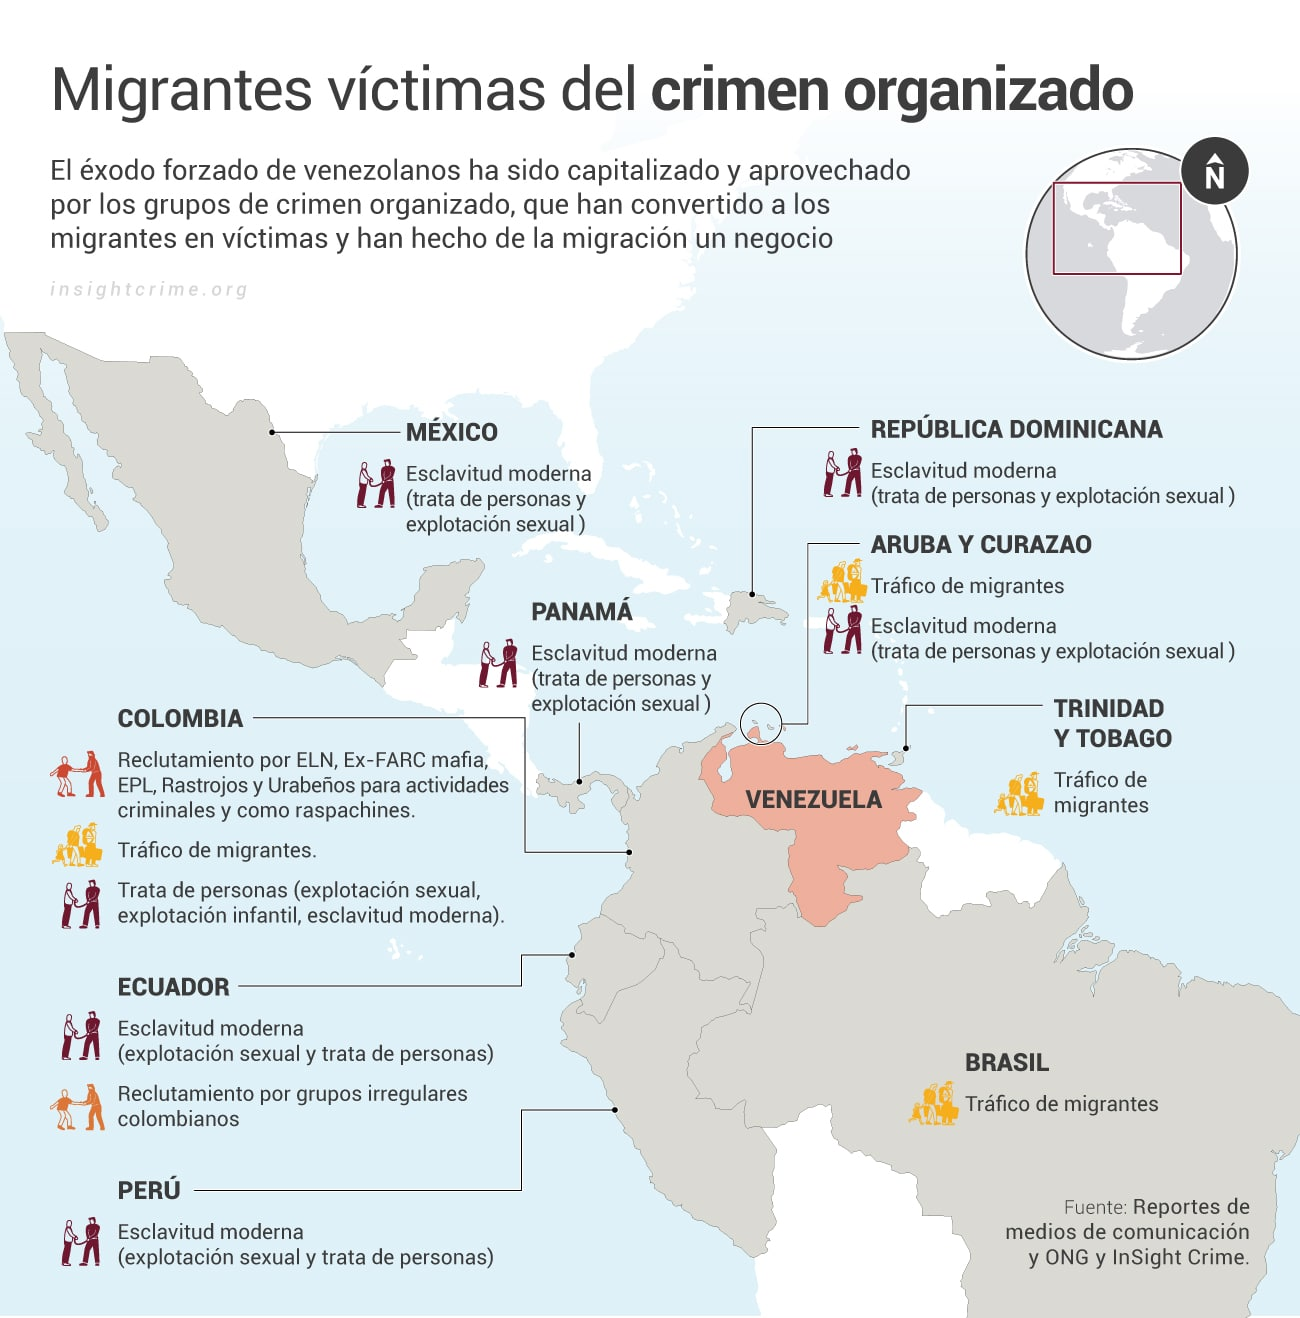 Migrantes-victimas-del-crimen-organizado_InSight-Crime_Map